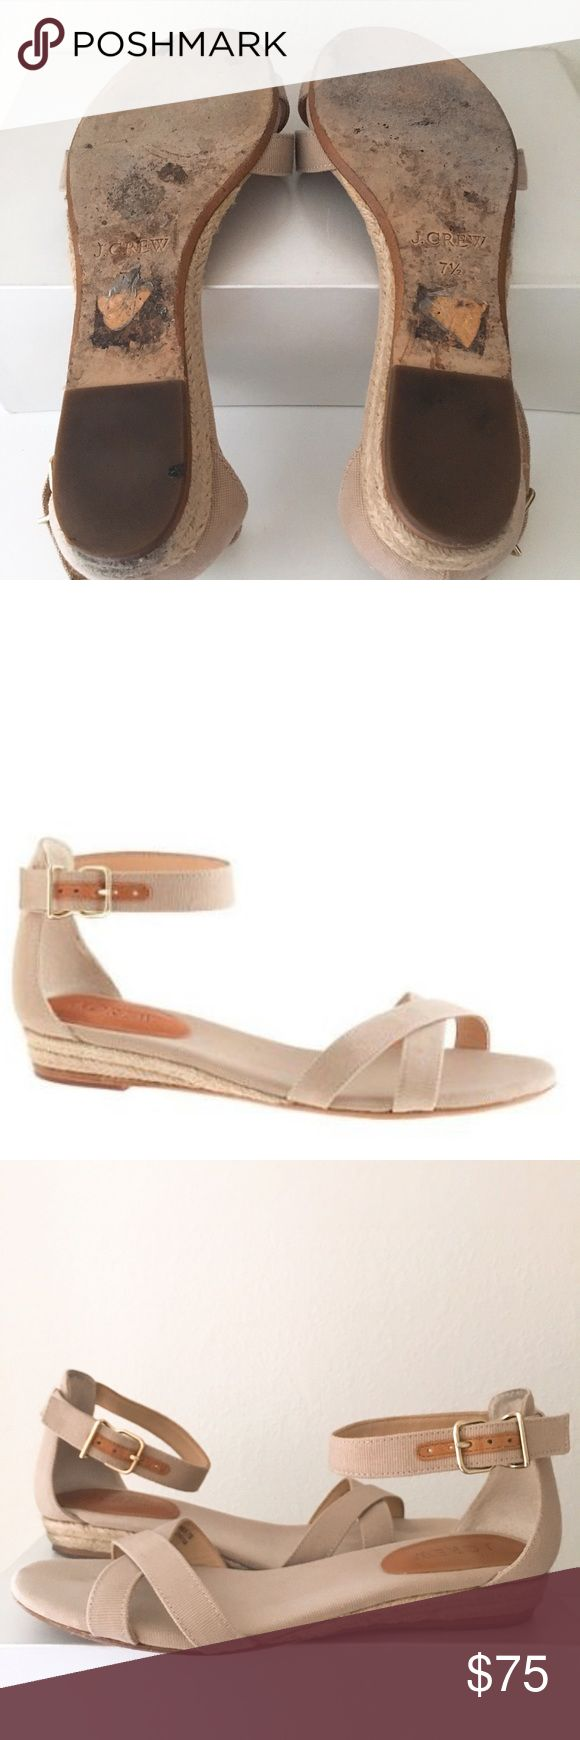 """J. Crew Marina Mini-wedge Espadrilles Nothing says summer like a sweet, strappy espadrille. These Marina mini-wedges have a nautical feel for that on-the-boardwalk look but also fit right in in an urban streetscape. Finished with an ankle strap and a low wedge heel, they're the go-anywhere shoe you'll wear daily. Cotton canvas upper. Leather lining and sole. Cotton canvas footbed. 7/8"""" heel. In EUC but the right heel is slightly dirtier due to driving. J. Crew Shoes Espadrilles"""